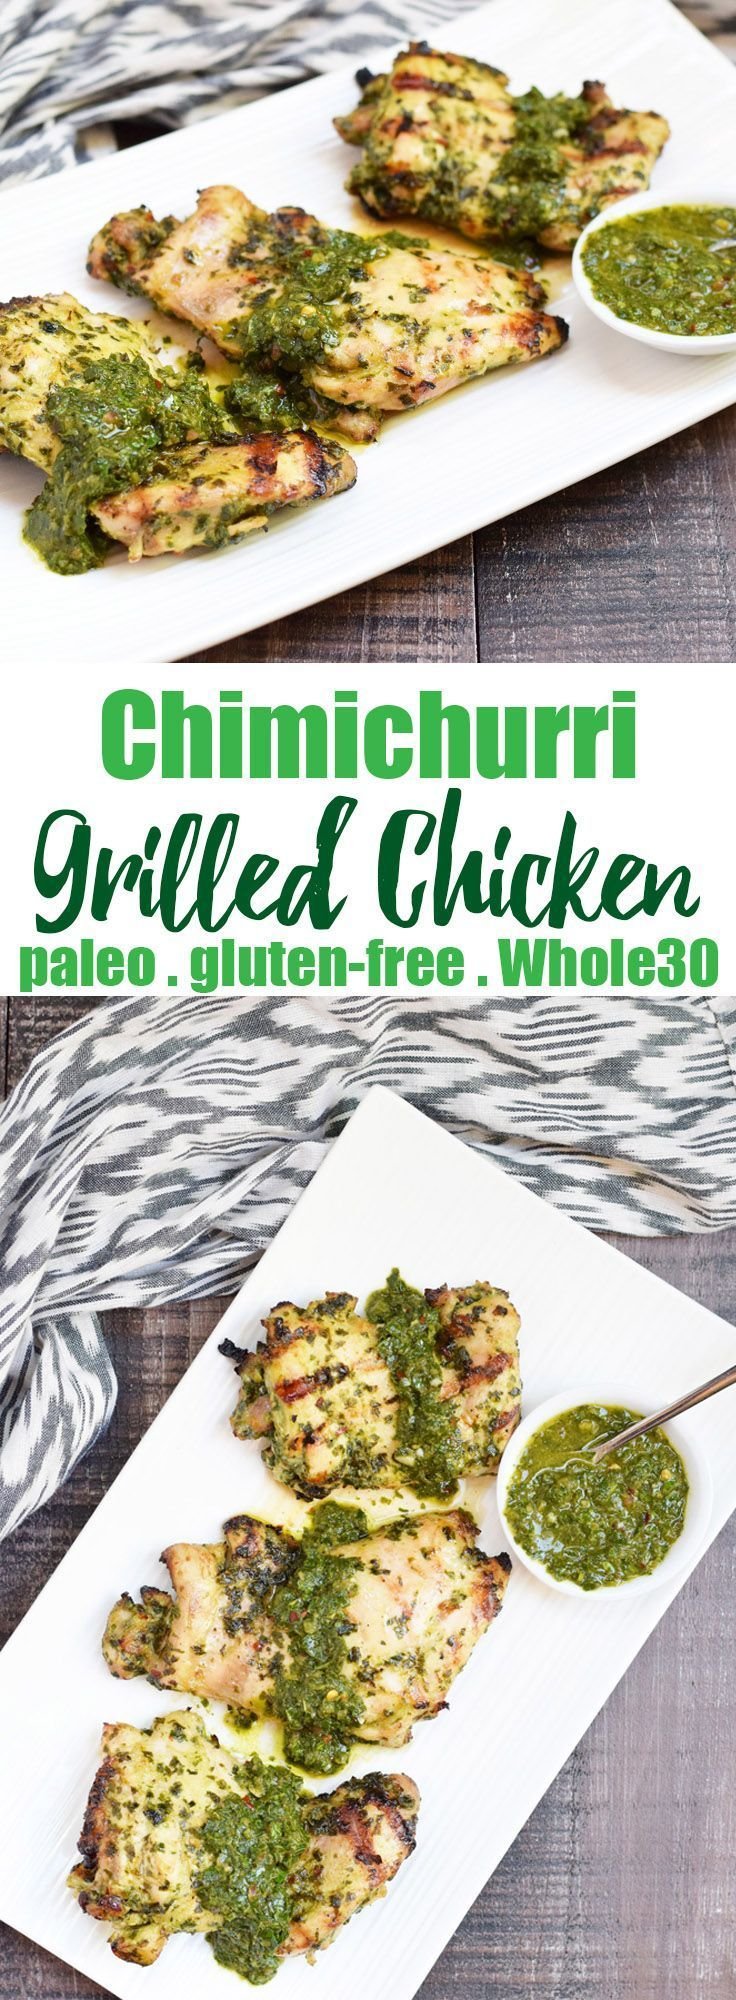 Chimichurri Grilled Chicken from Living Loving Paleo | A super simple yet incredibly flavorful dish - trust me, you'll want to make a double batch of the sauce to put on everything! | An exclusive Invincible Inspiration members recipe